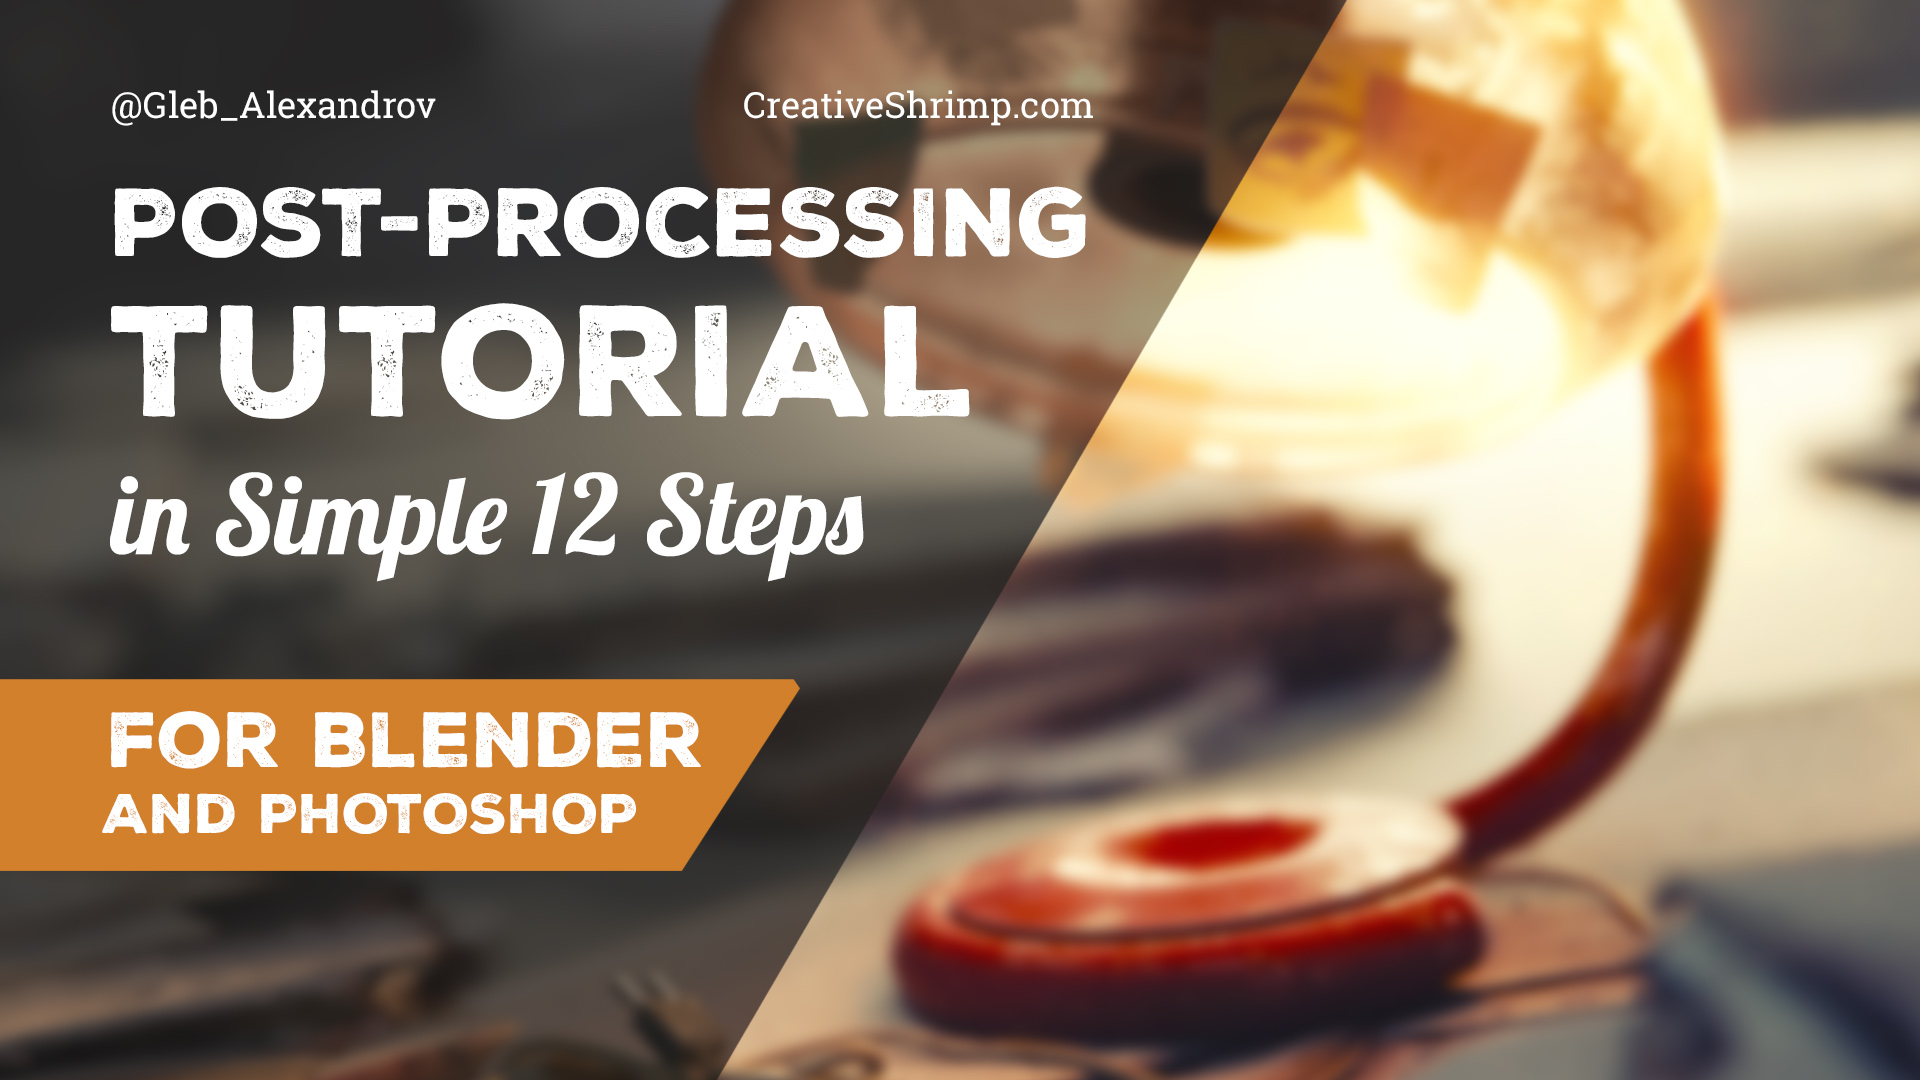 Universal Post-processing Tutorial in 12 Simple Steps (Using